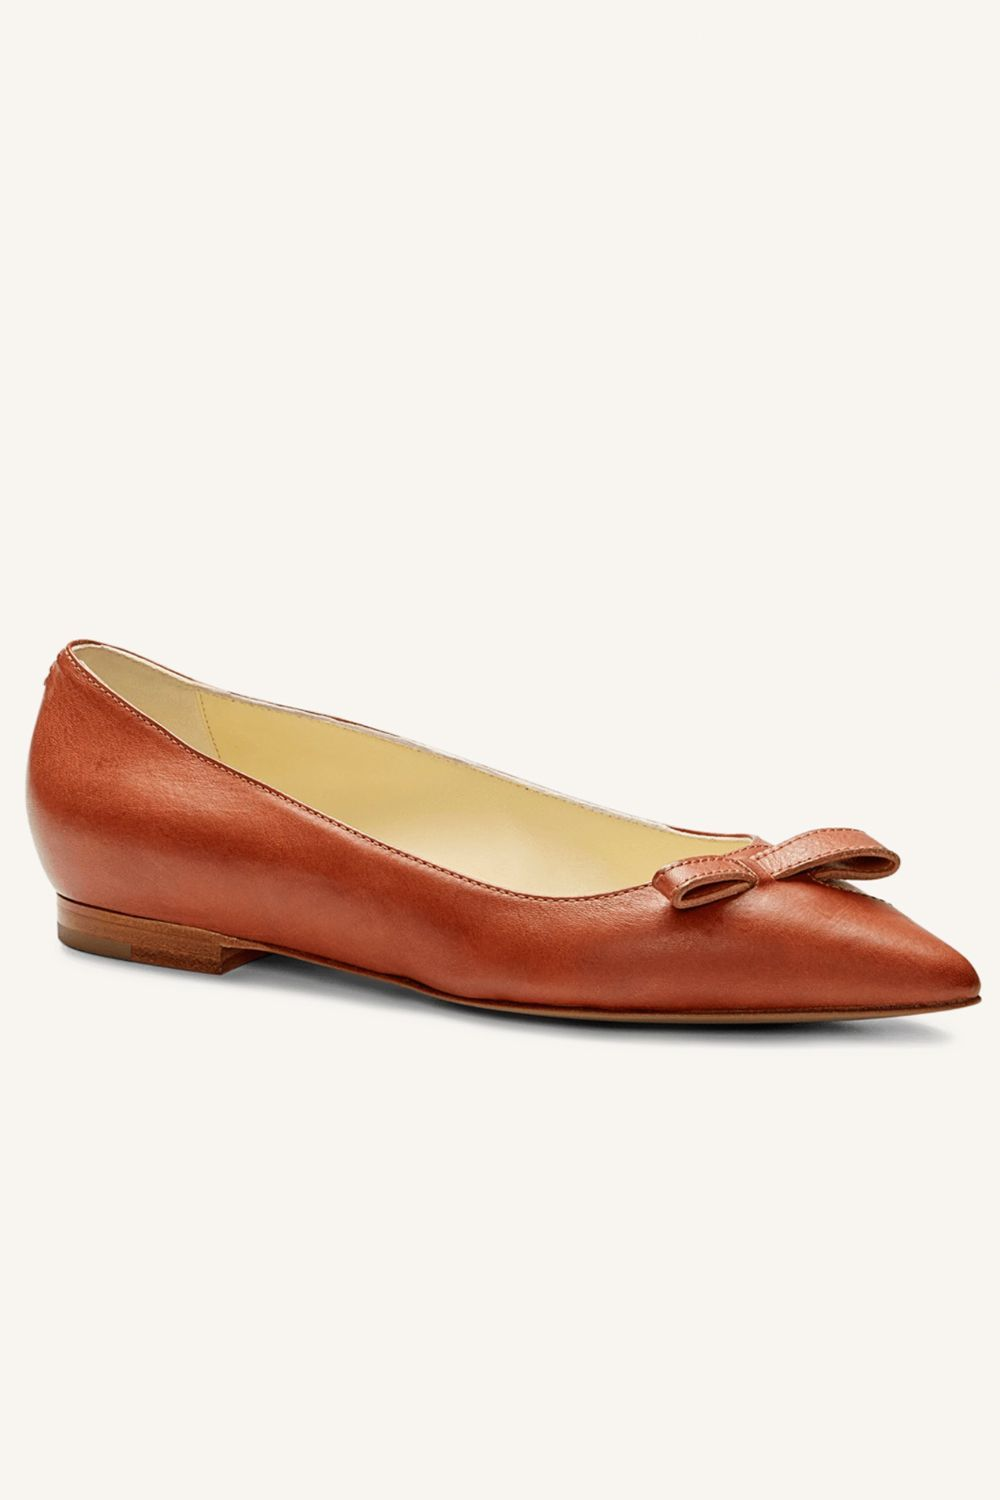 15 Most Comfortable Flats 2021 Cutest Flat Shoes For Walking